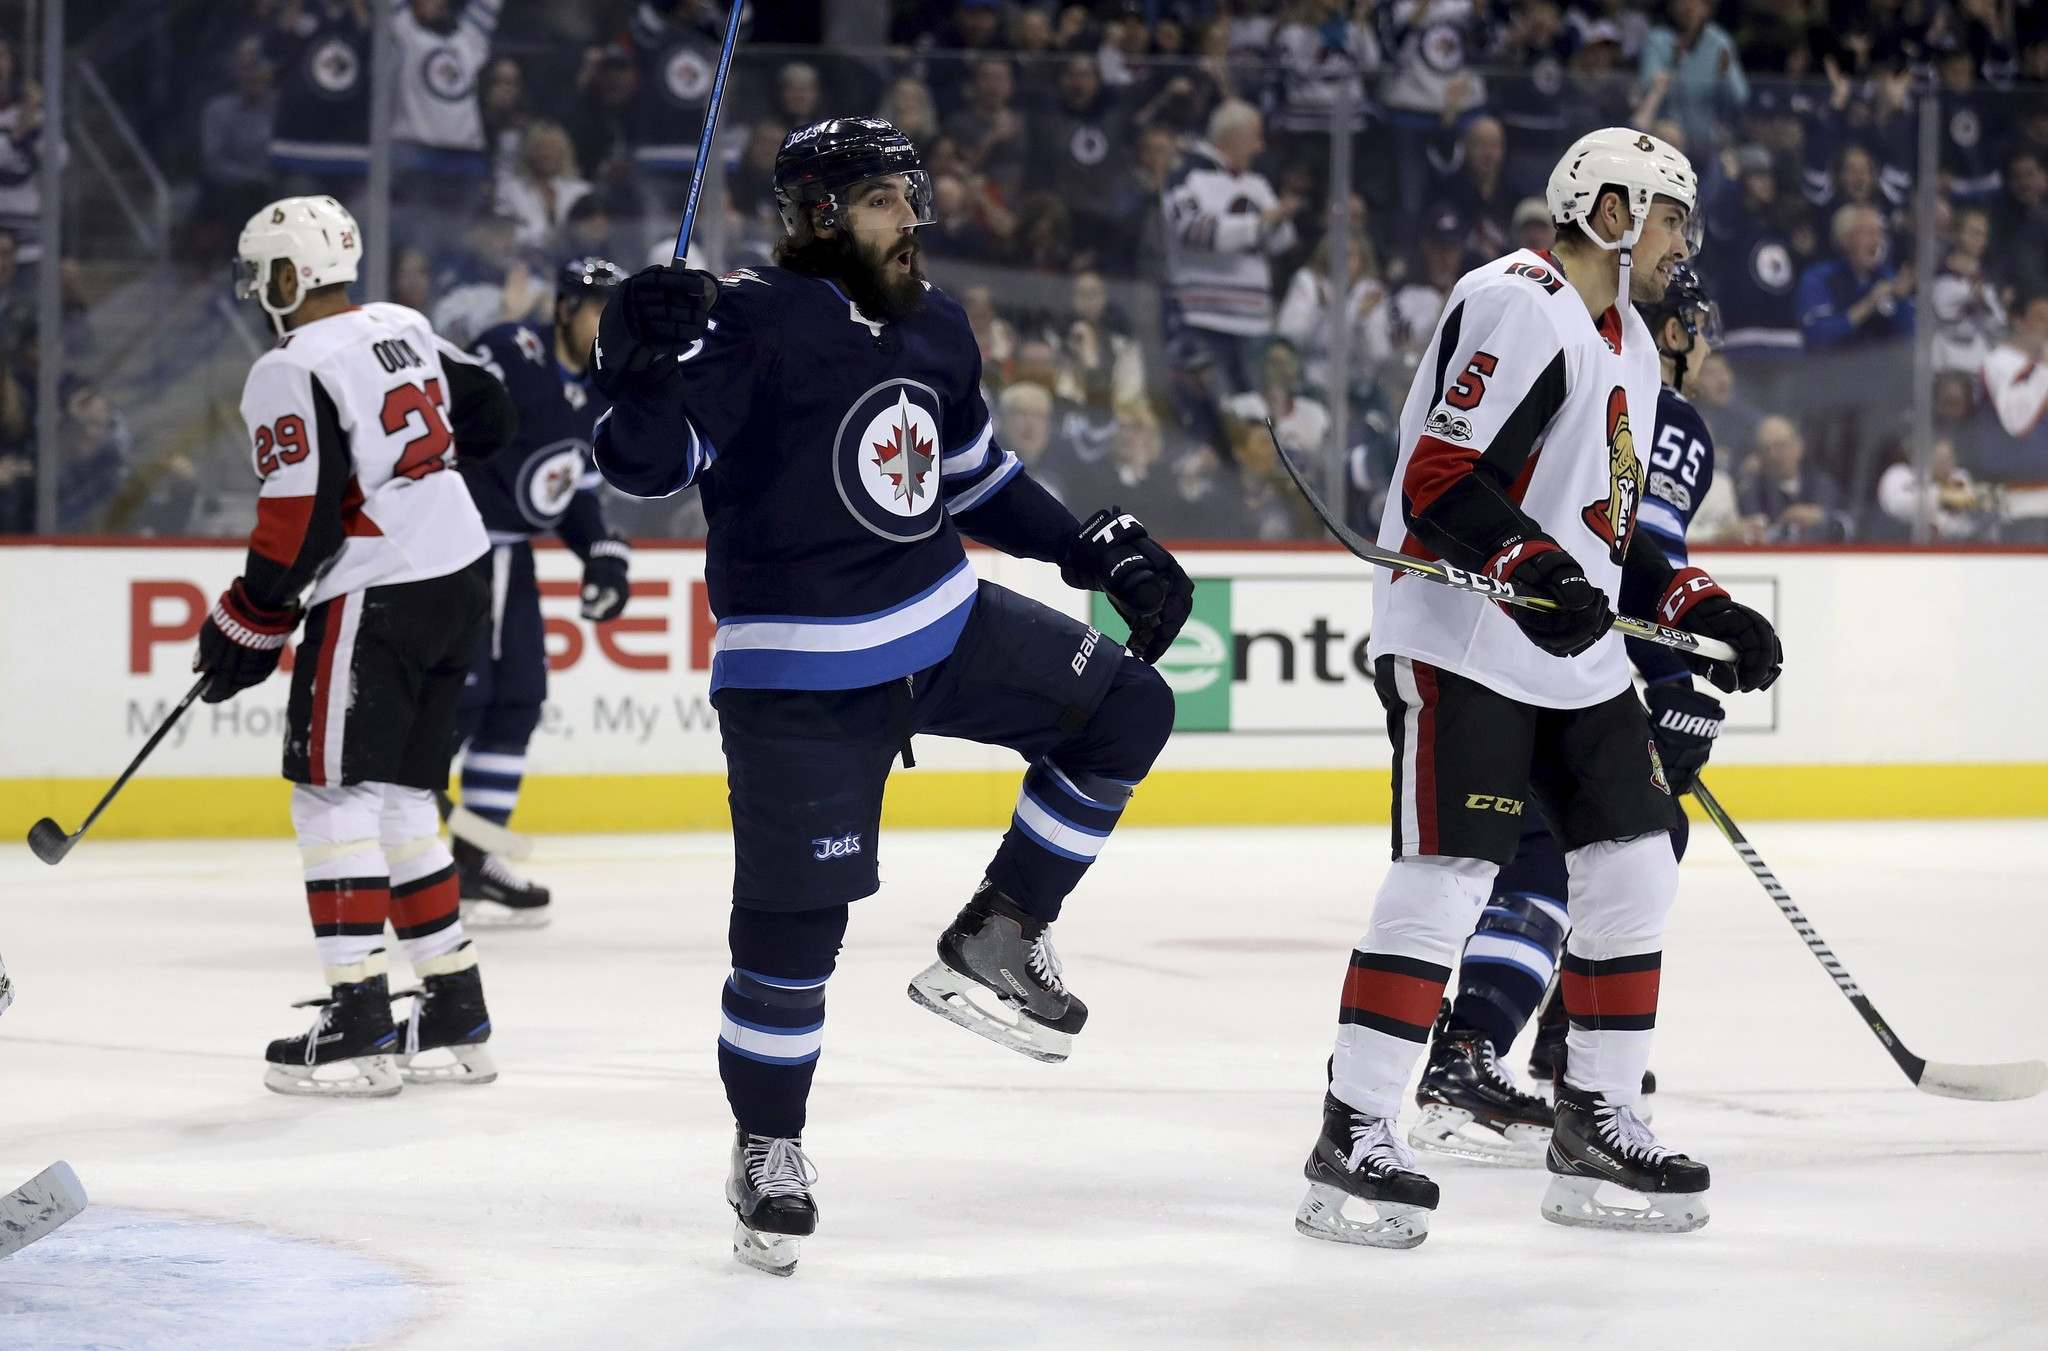 TREVOR HAGAN / THE CANADIAN PRESS</p><p>Winnipeg Jets&#39; Mathieu Perreault (85) celebrates after scoring against the Ottawa Senators during first period NHL hockey action in Winnipeg, Sunday, December 3, 2017.</p>